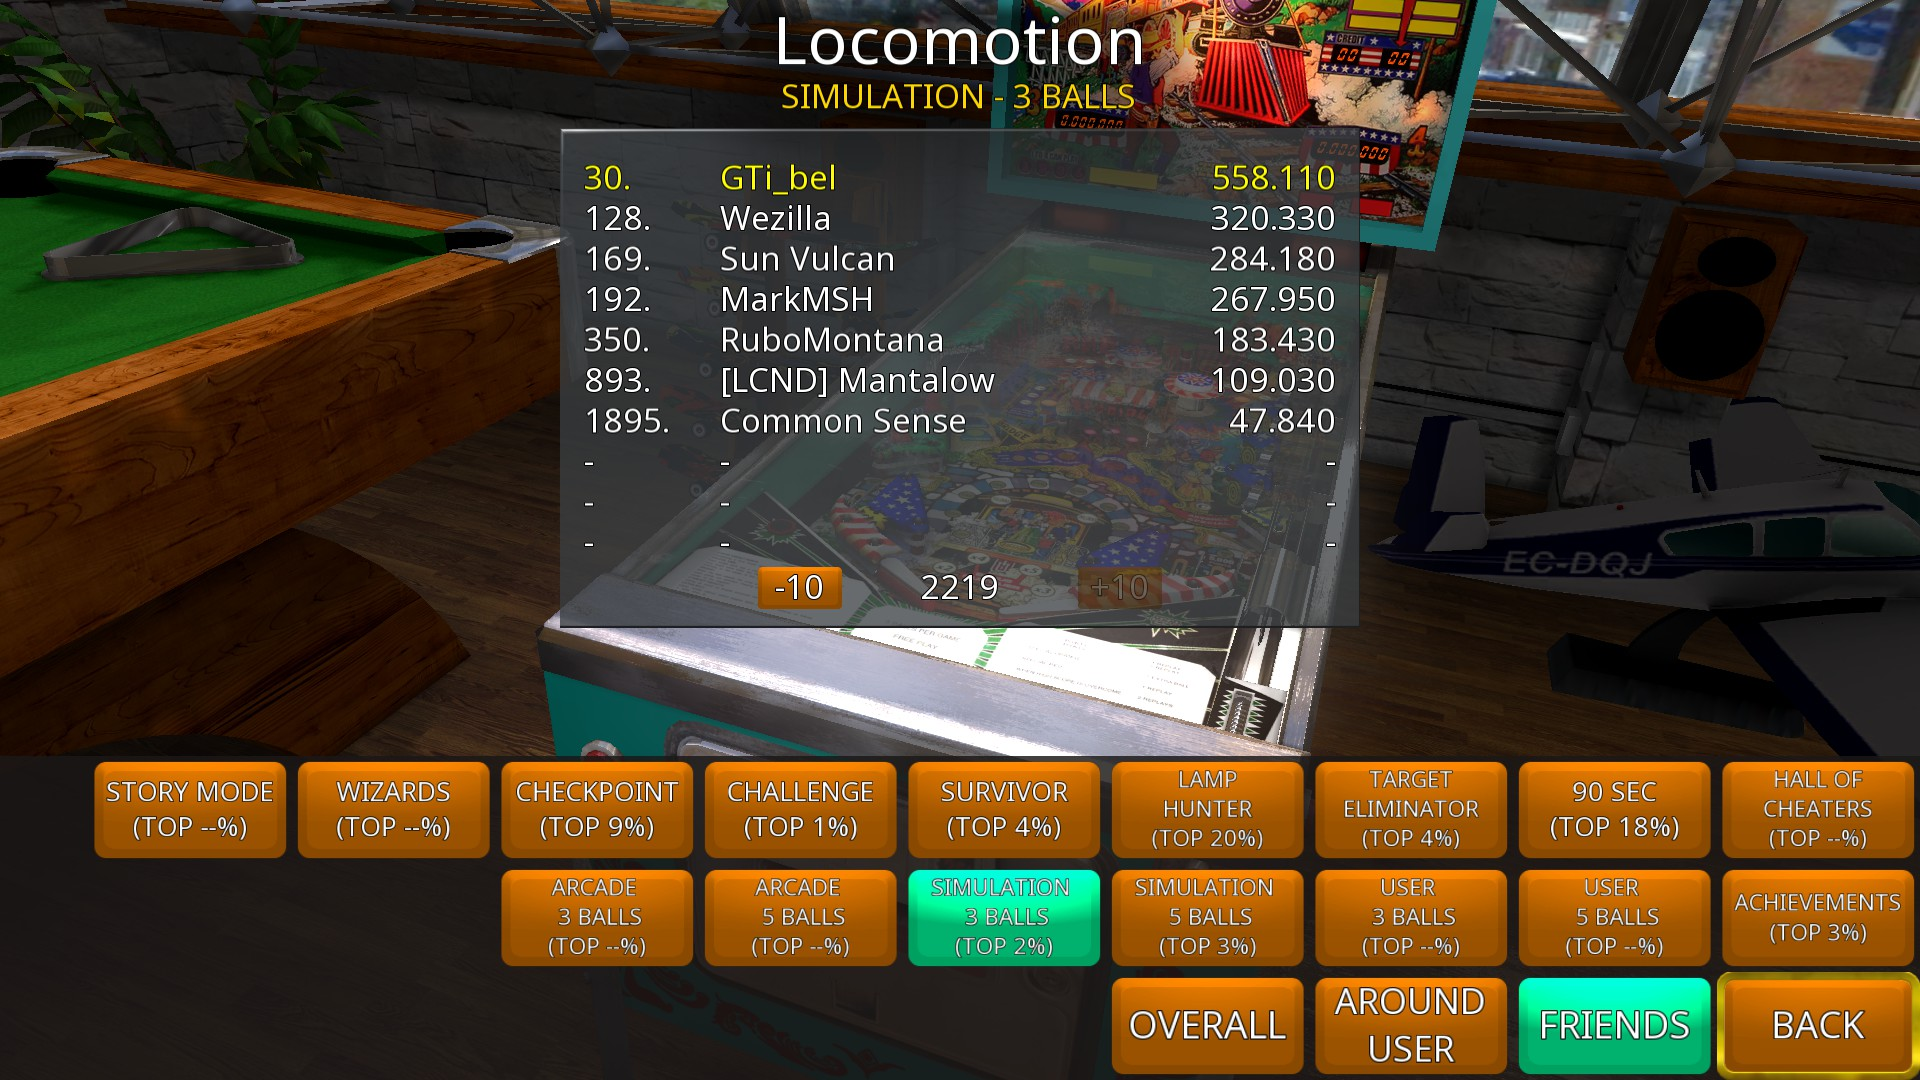 GTibel: Zaccaria Pinball: Locomotion [3 balls] (PC) 558,110 points on 2018-08-11 05:17:57